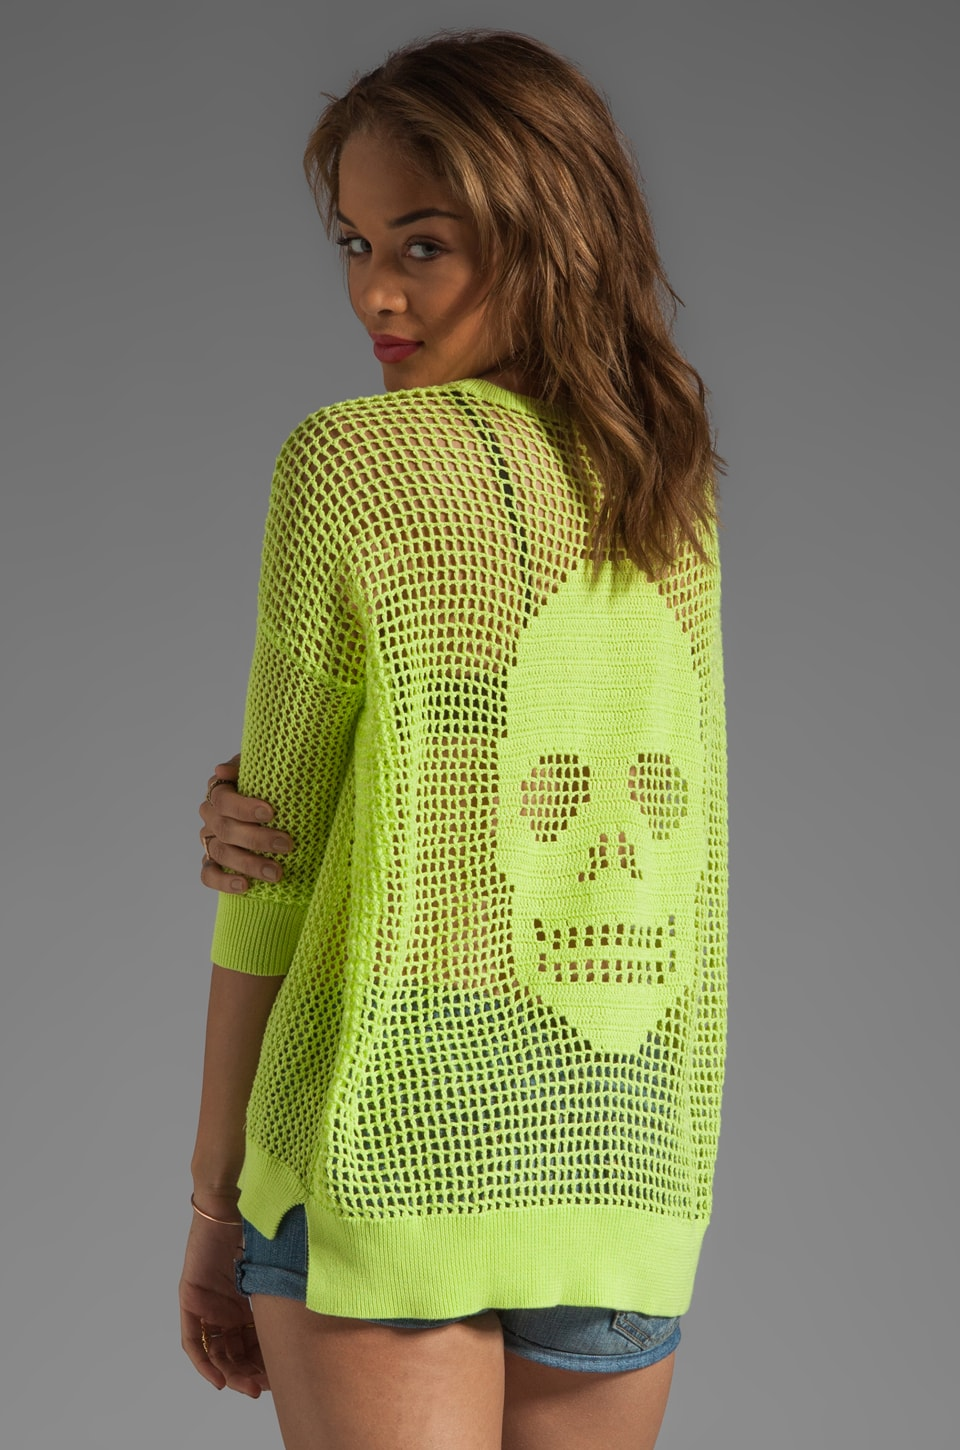 Autumn Cashmere Hand Crochet Skull Sweater in Glowworm/Glowworm